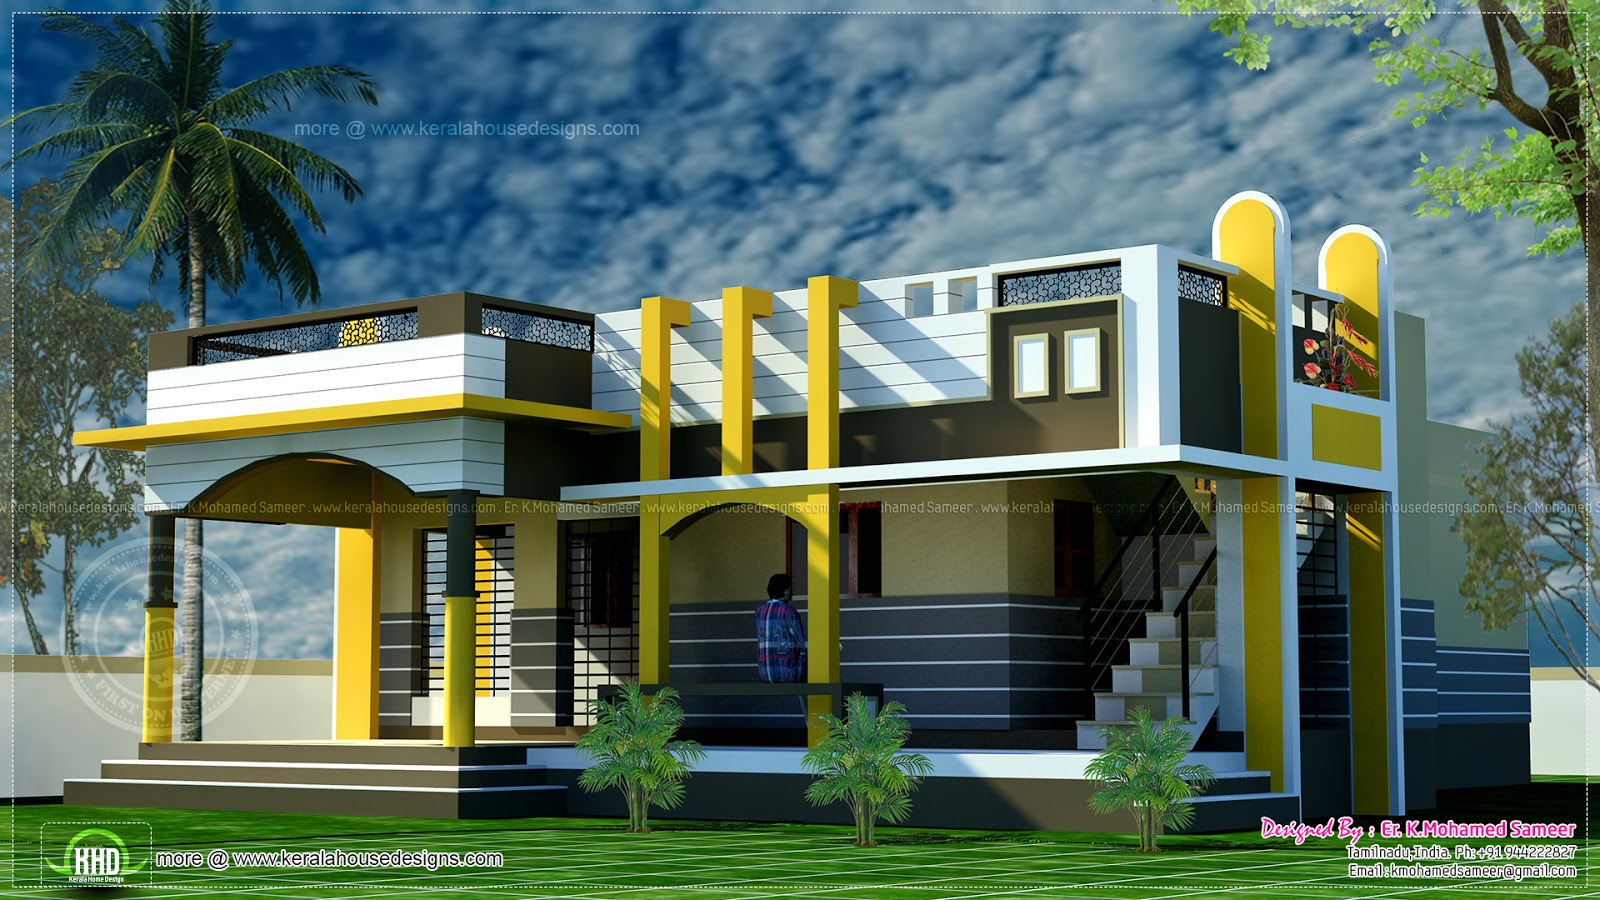 Small house design contemporary style kerala home design for Small building design ideas